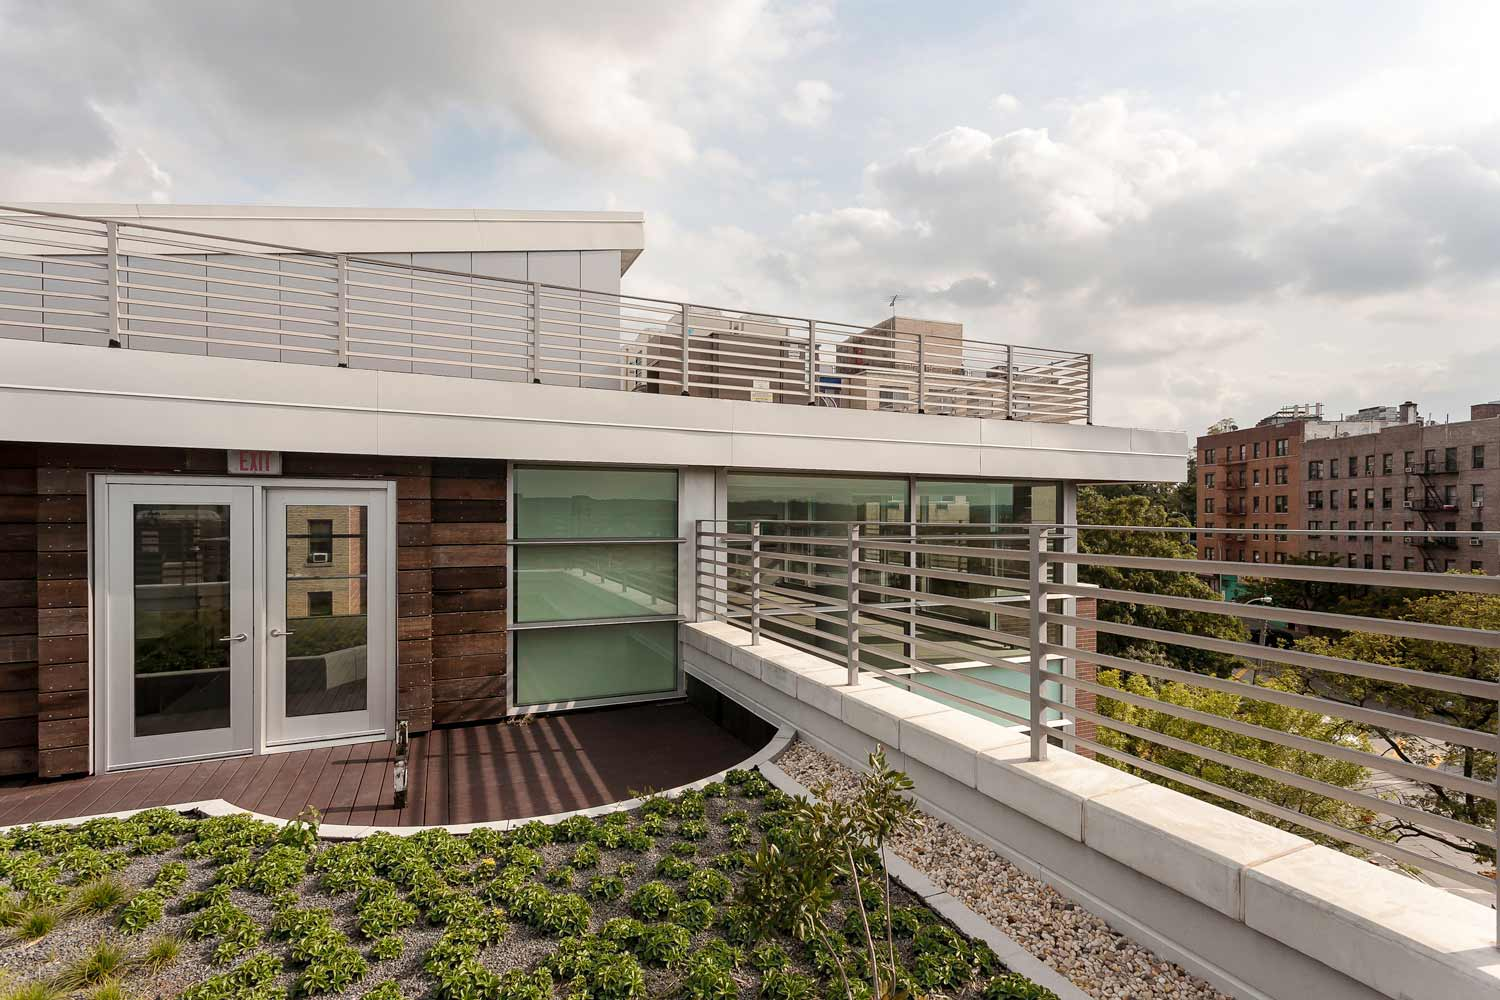 The rooftop terrace at Kingsbridge Terrace offer expansive views and a green retreat for residents.